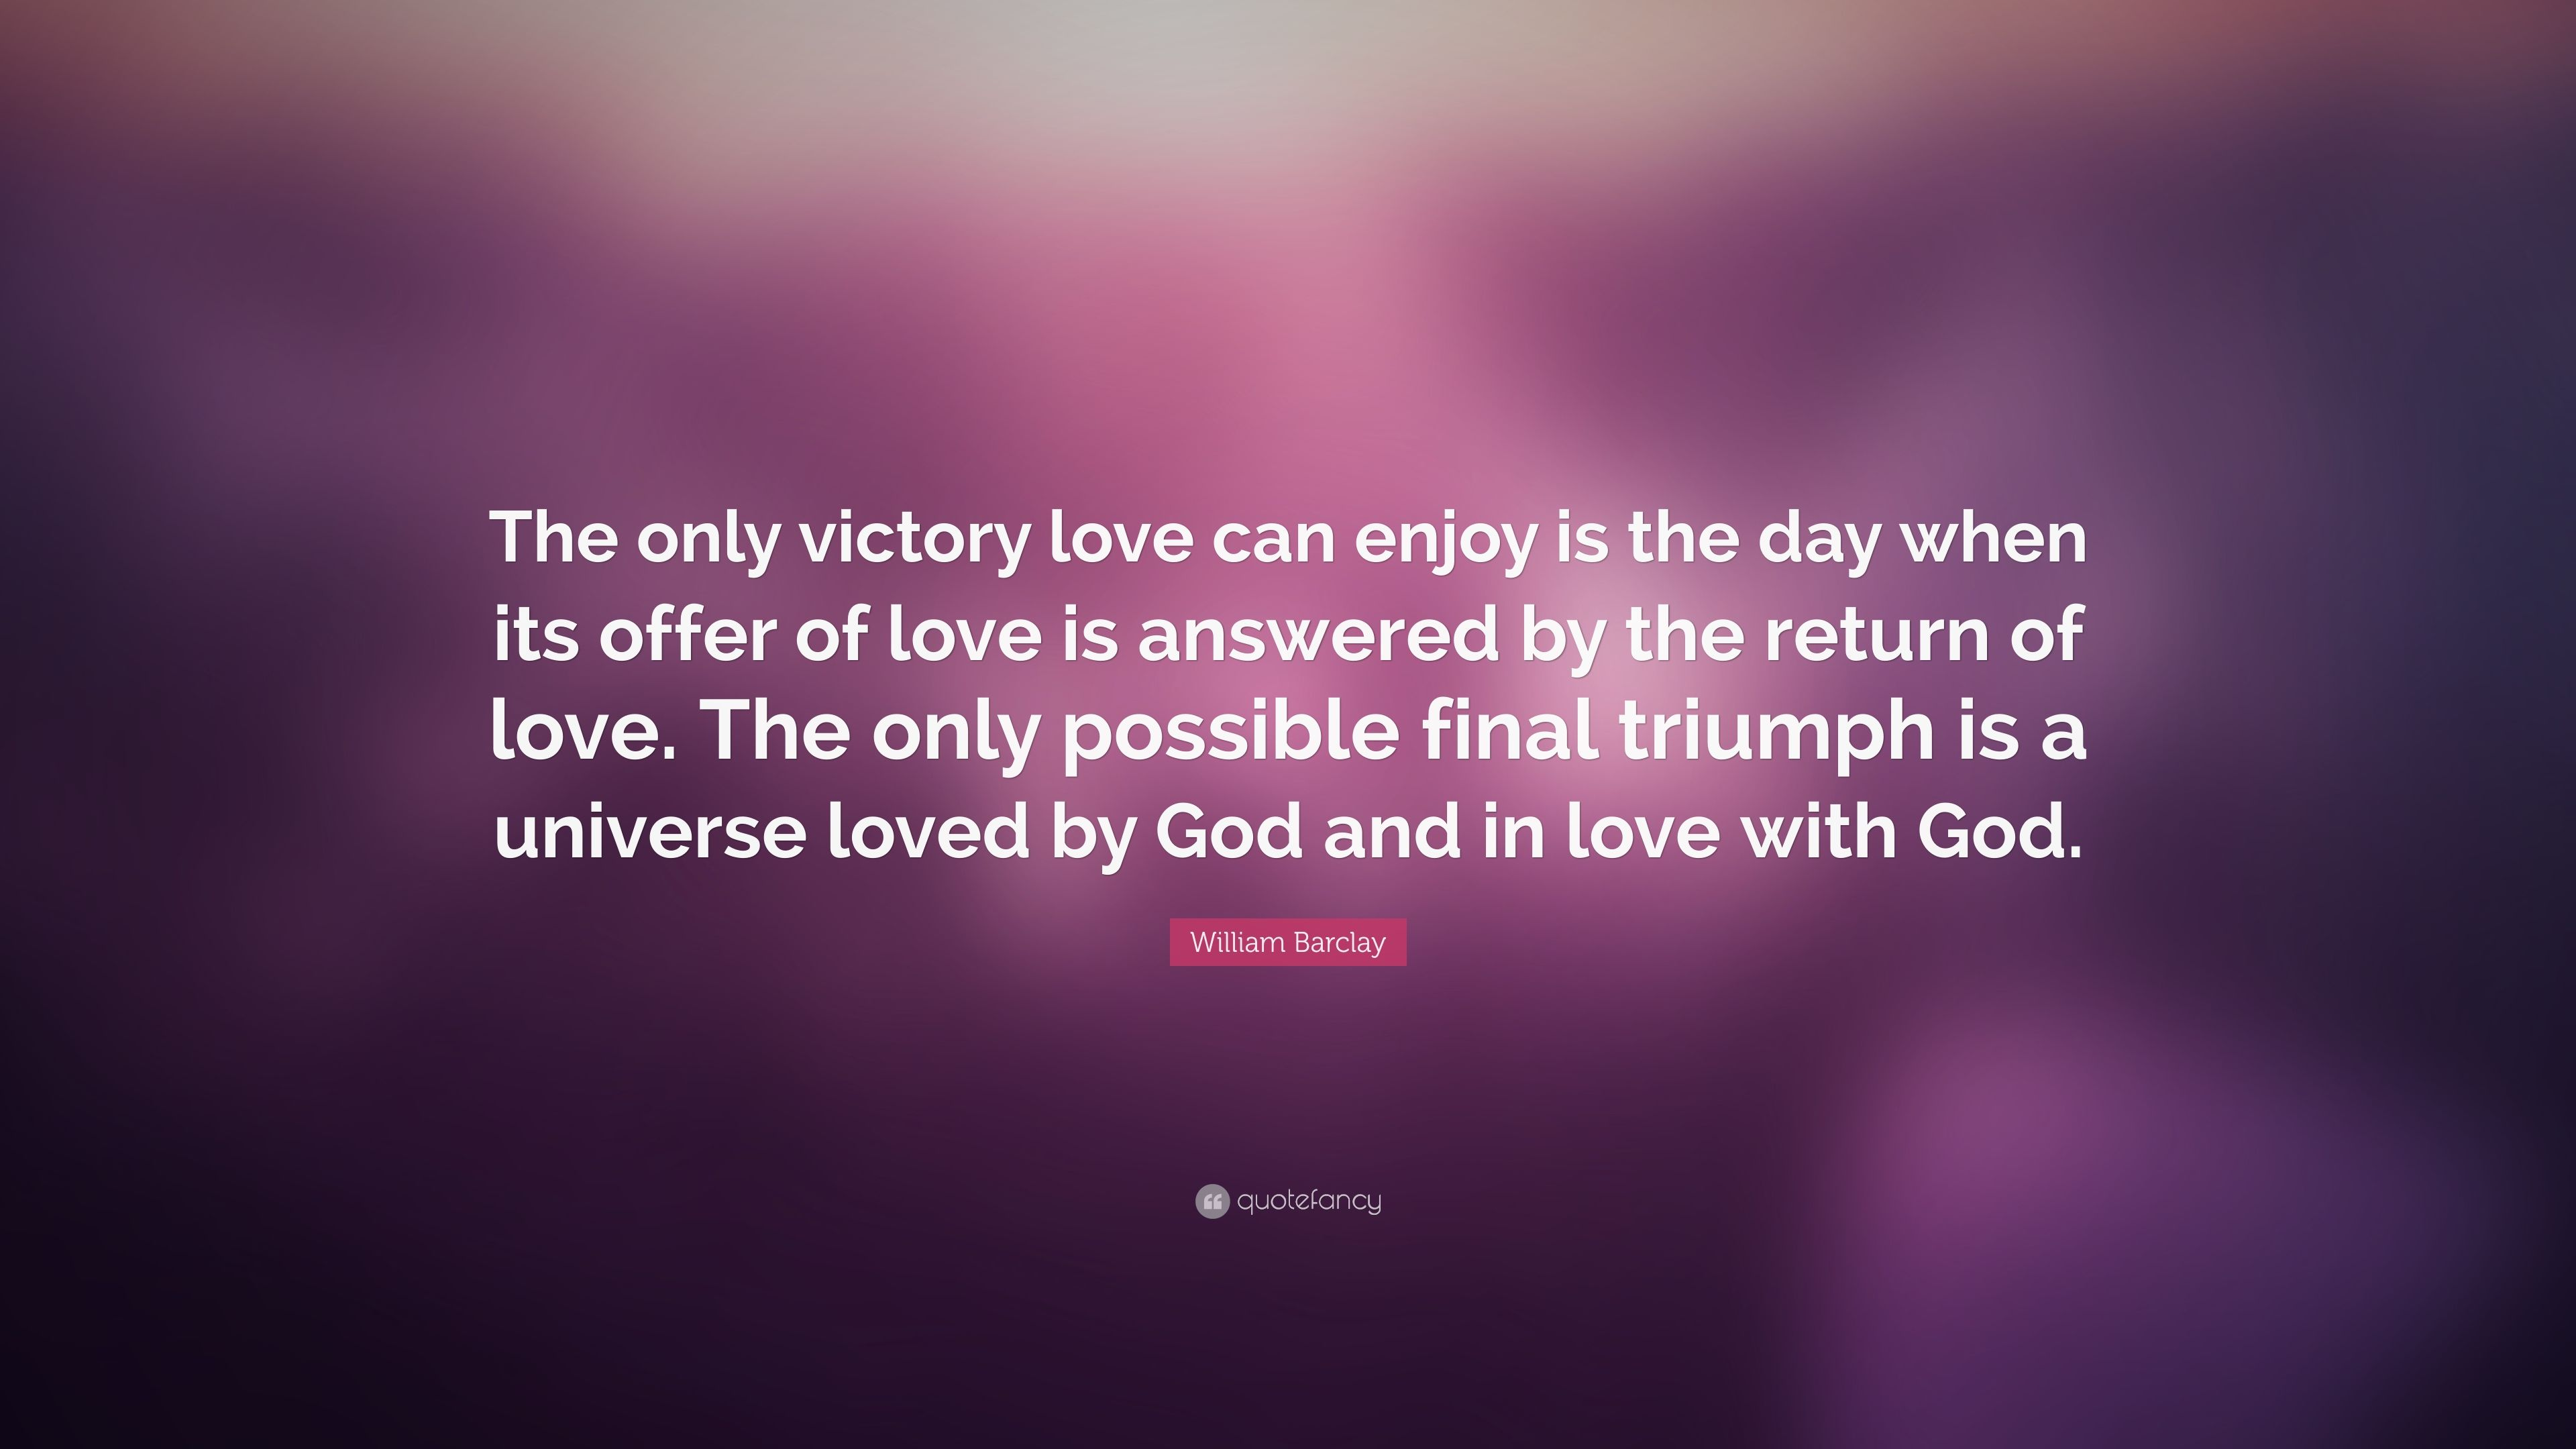 William Barclay Quote: U201cThe Only Victory Love Can Enjoy Is The Day When Its